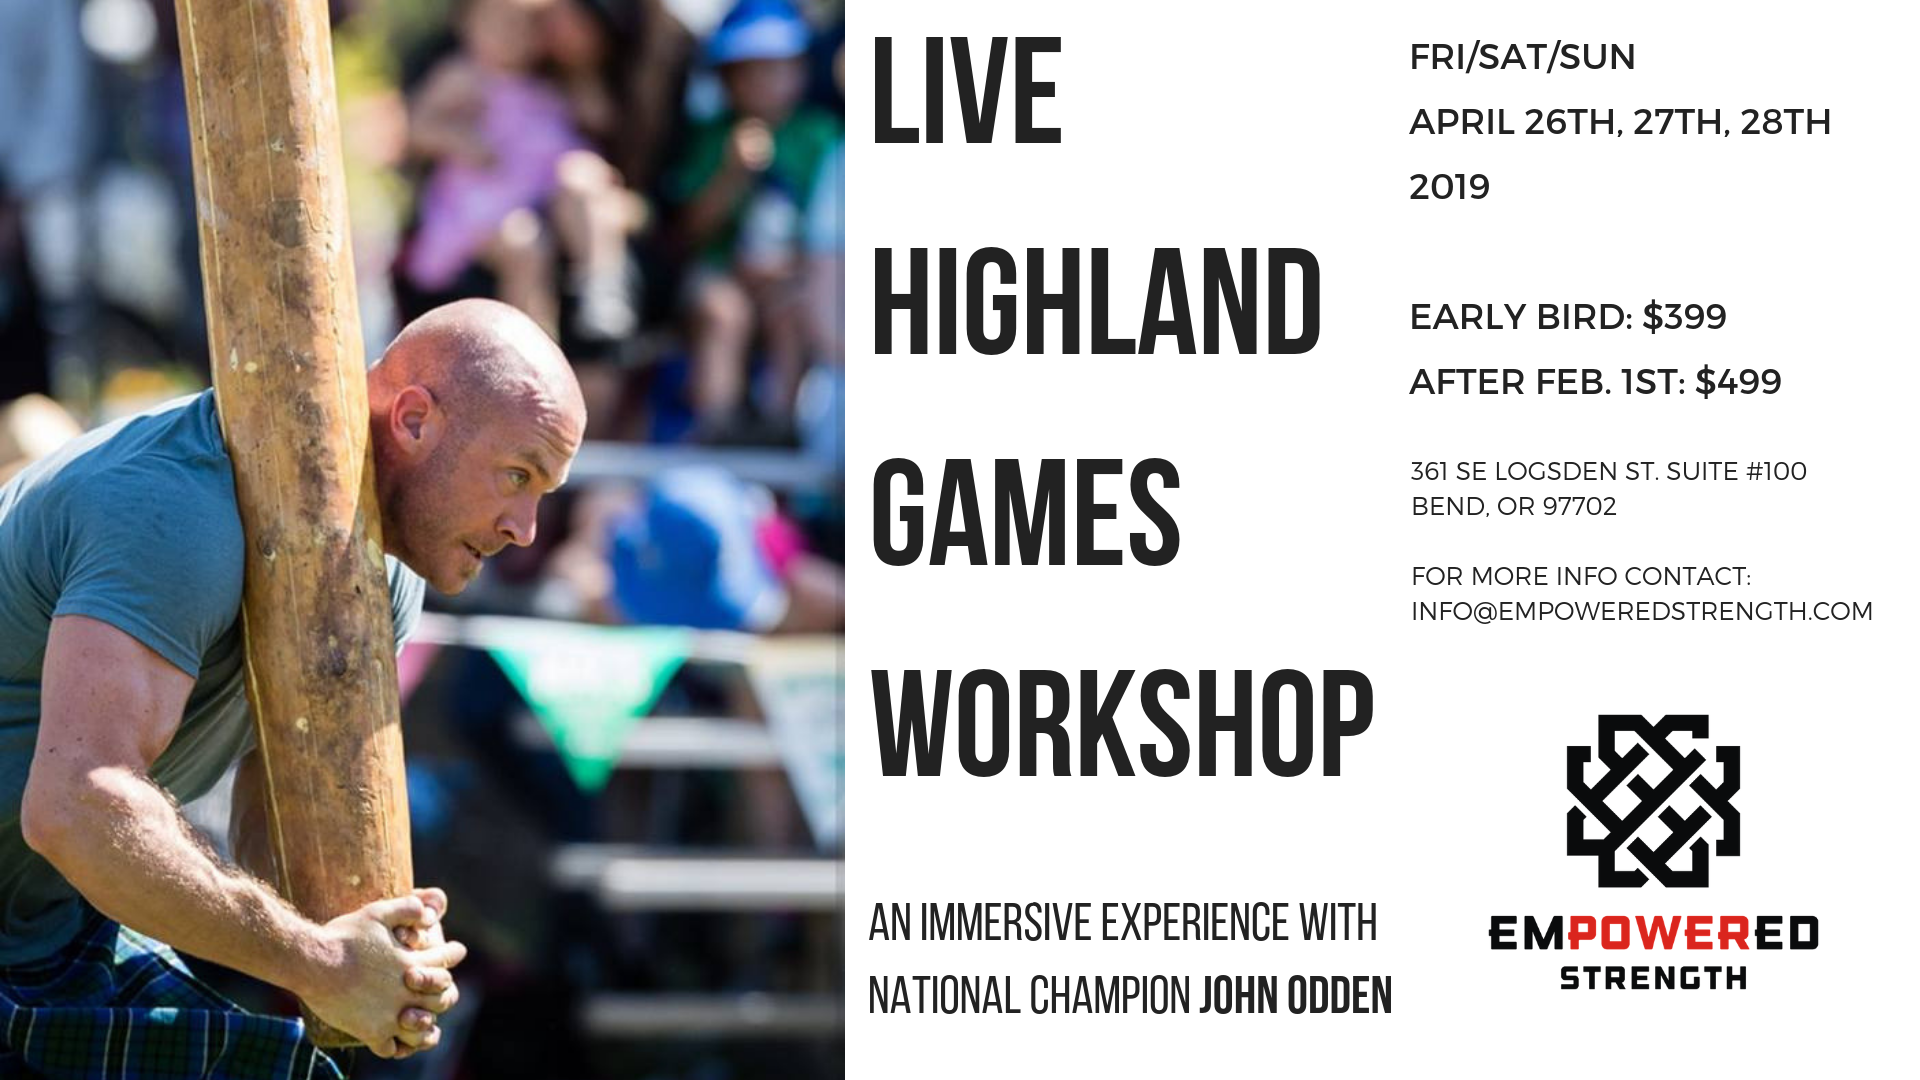 Highland Games Workshop